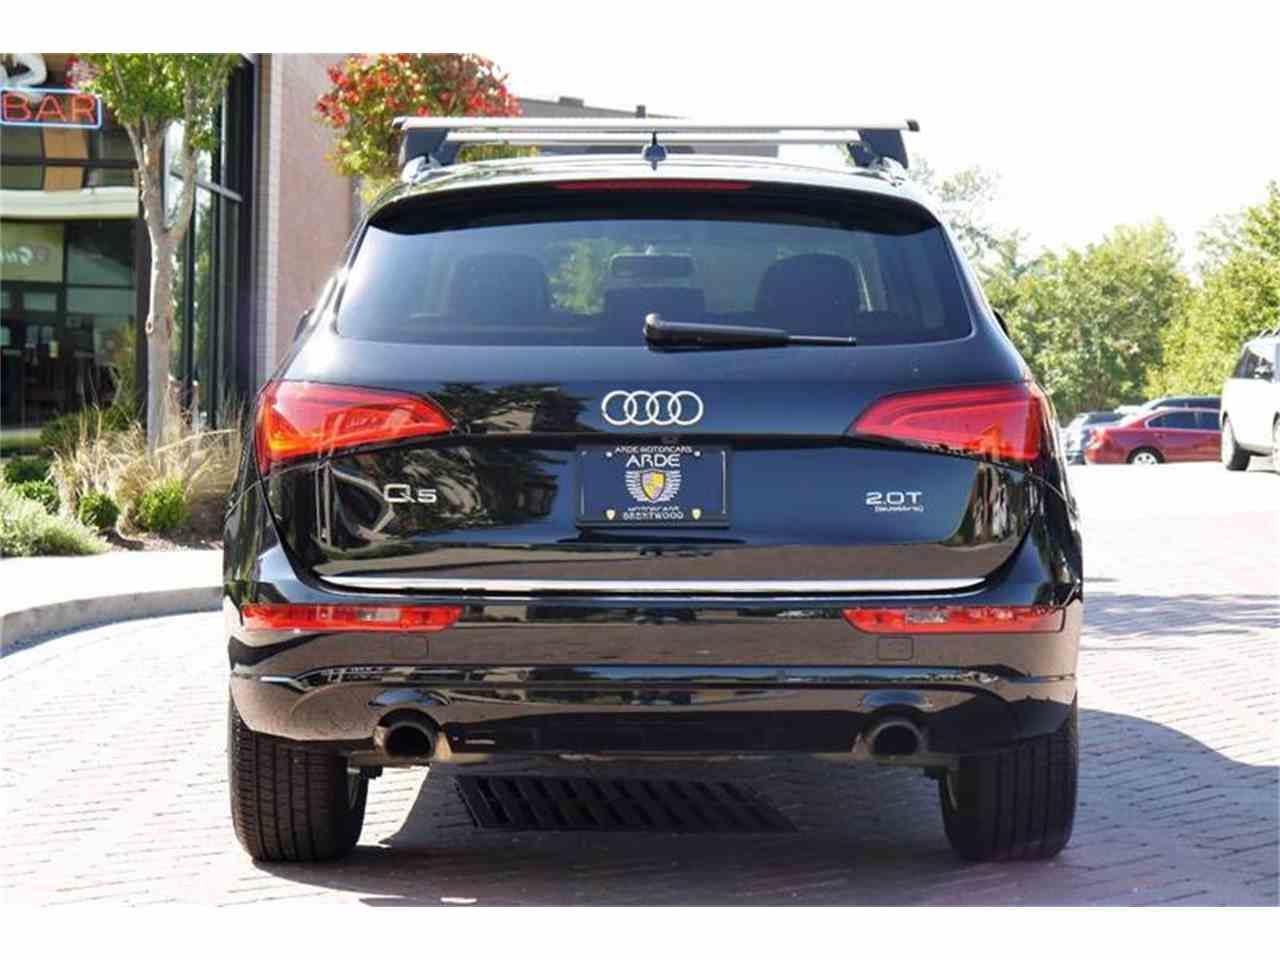 Large Picture of '16 Audi Q5 located in Brentwood Tennessee - $42,800.00 - M2NC